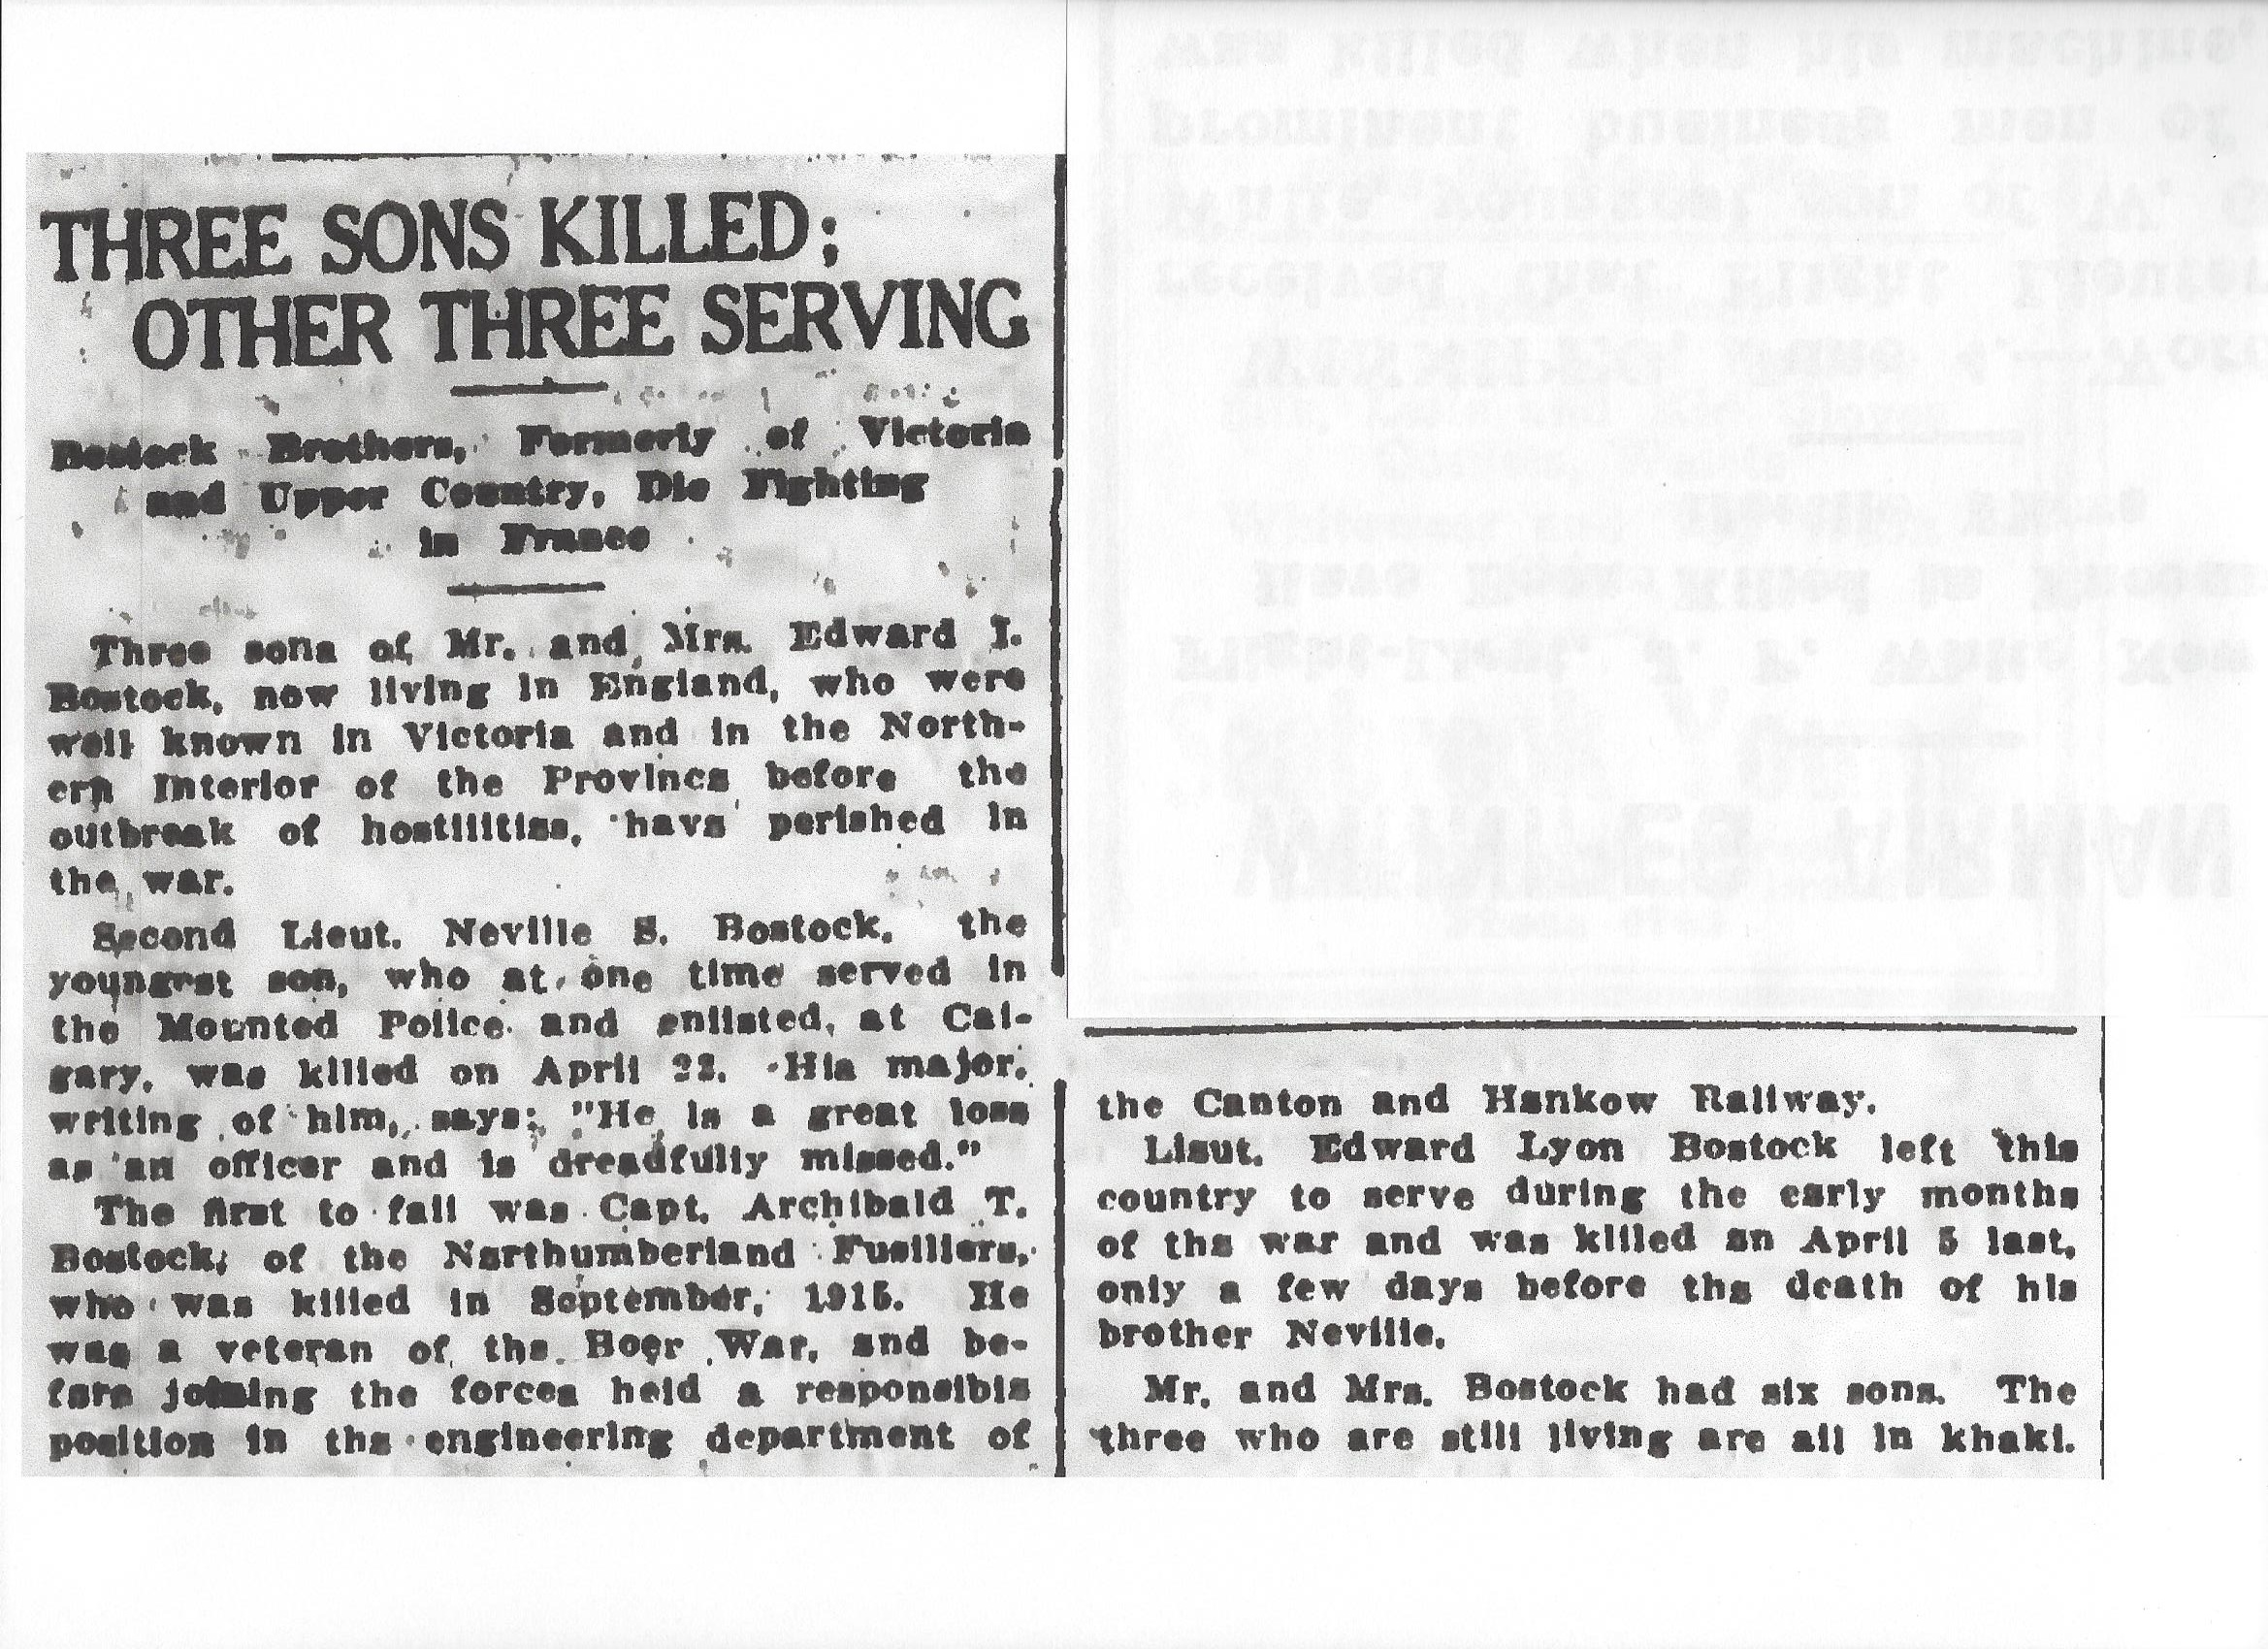 Newspaper clipping– From the Daily Colonist of June 5, 1917. Nevill's brother Archibald Bostock died on September 30, 1915 and is buried at the Etaples Military Cemetery, and his brother Edward died on April 5, 1917 and is buried at the Bray Military Cemetery, Image taken from web address of http://archive.org/stream/dailycolonist59y152uvic#page/n0/mode/1up